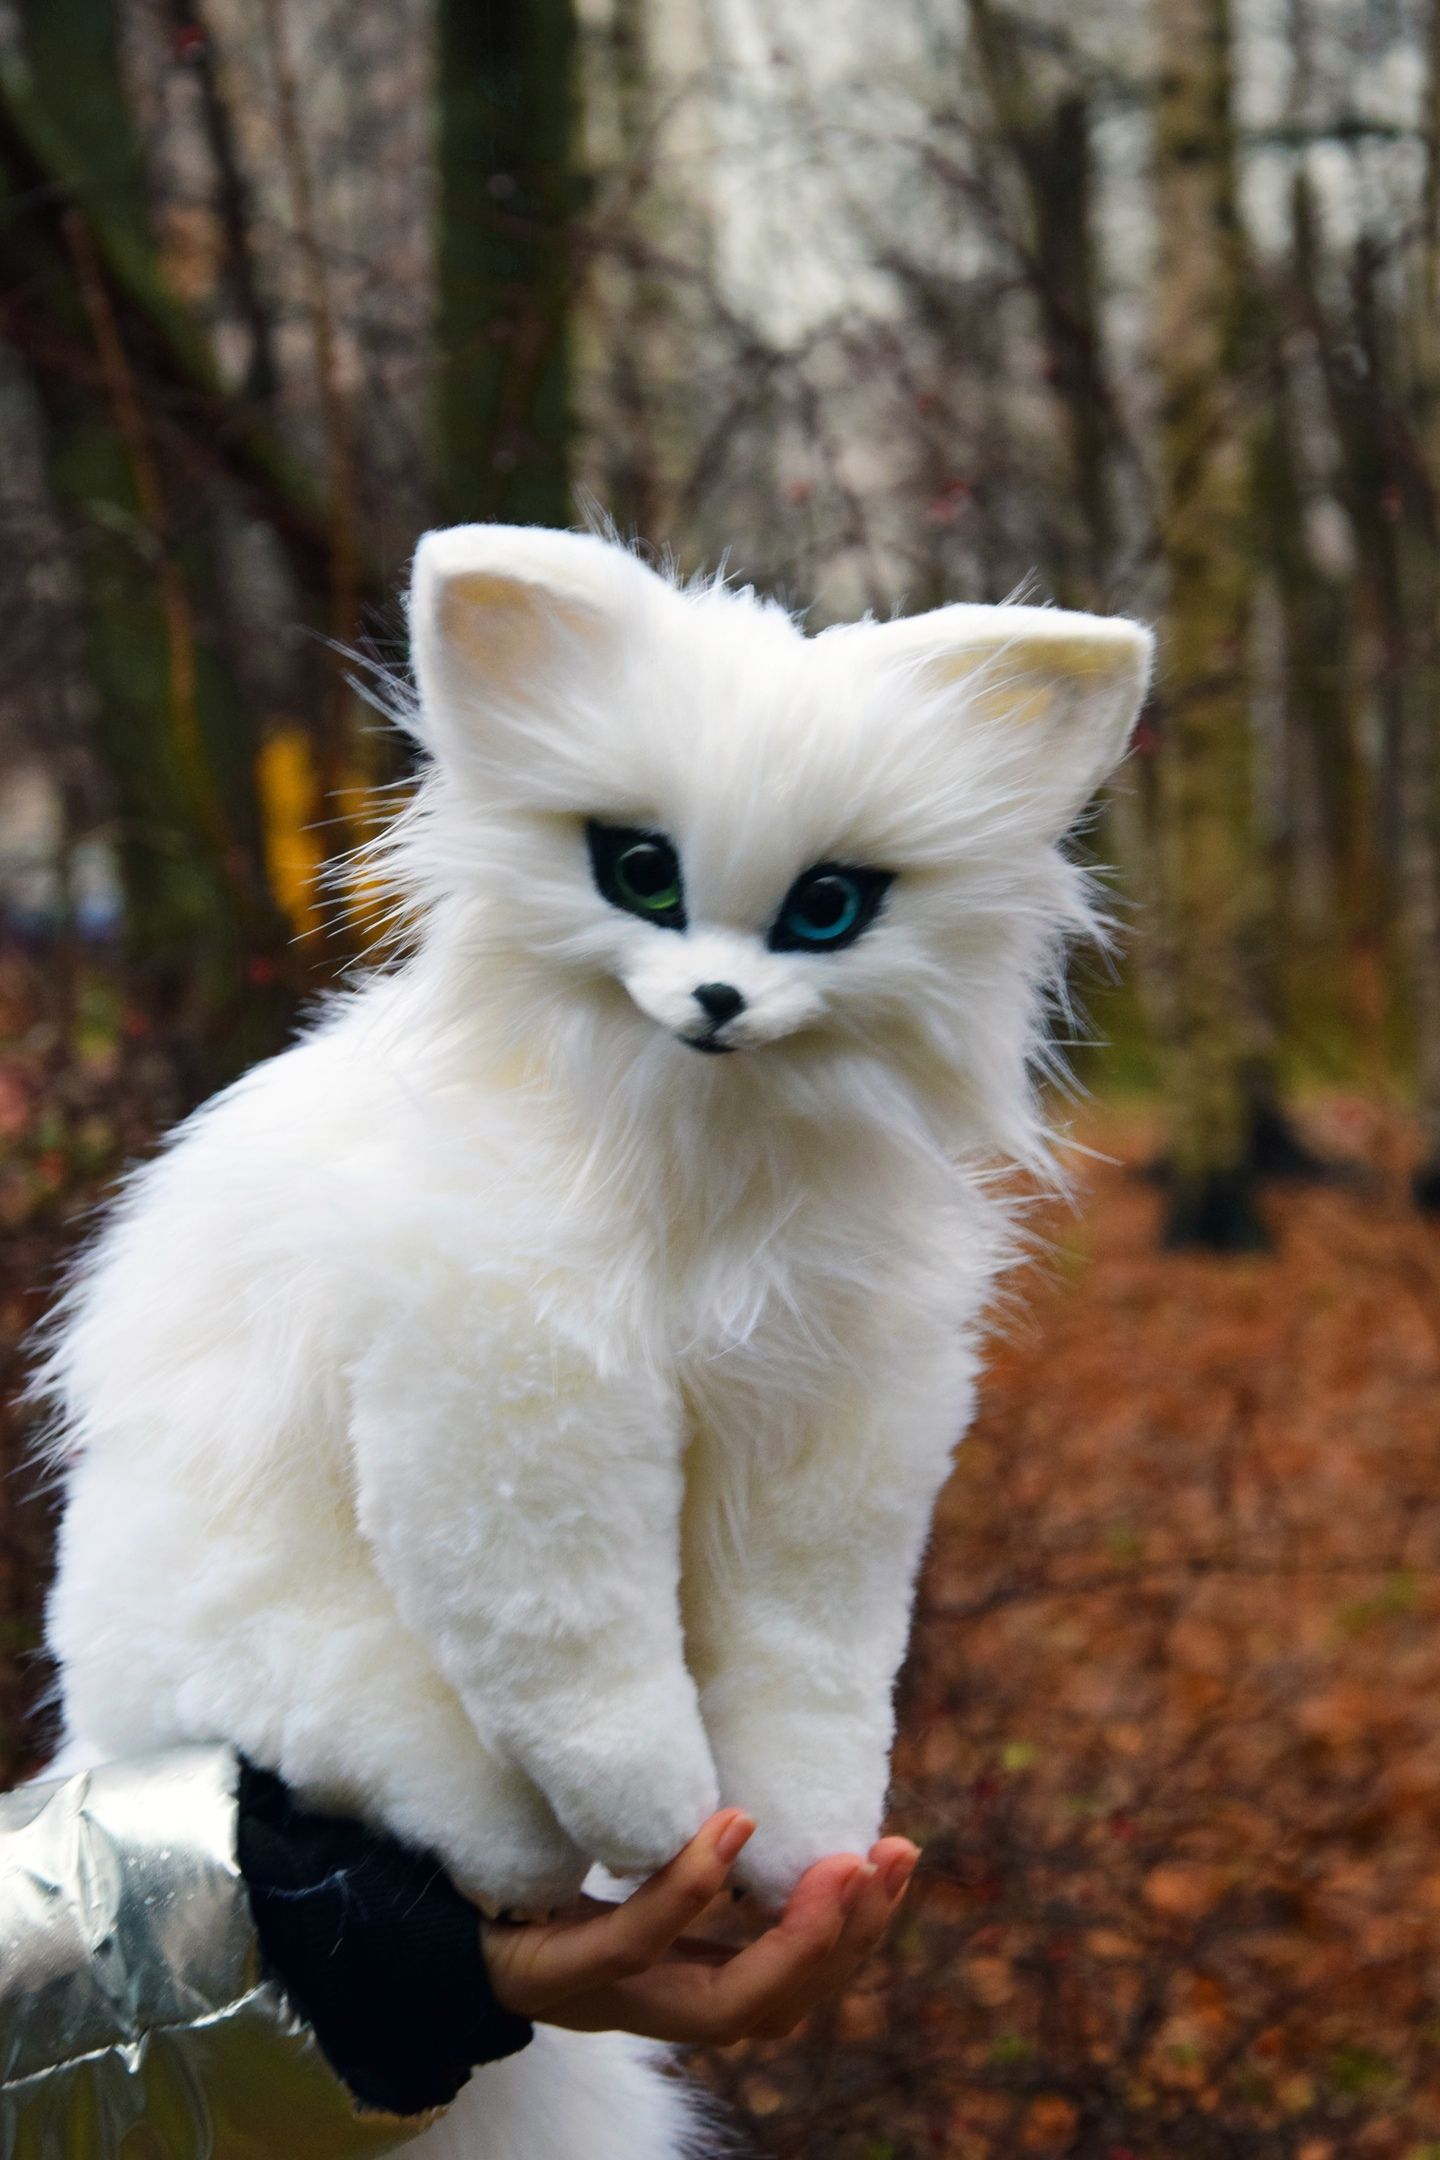 Arctic Fox, Whimsical Animals & Fantasy creatures from